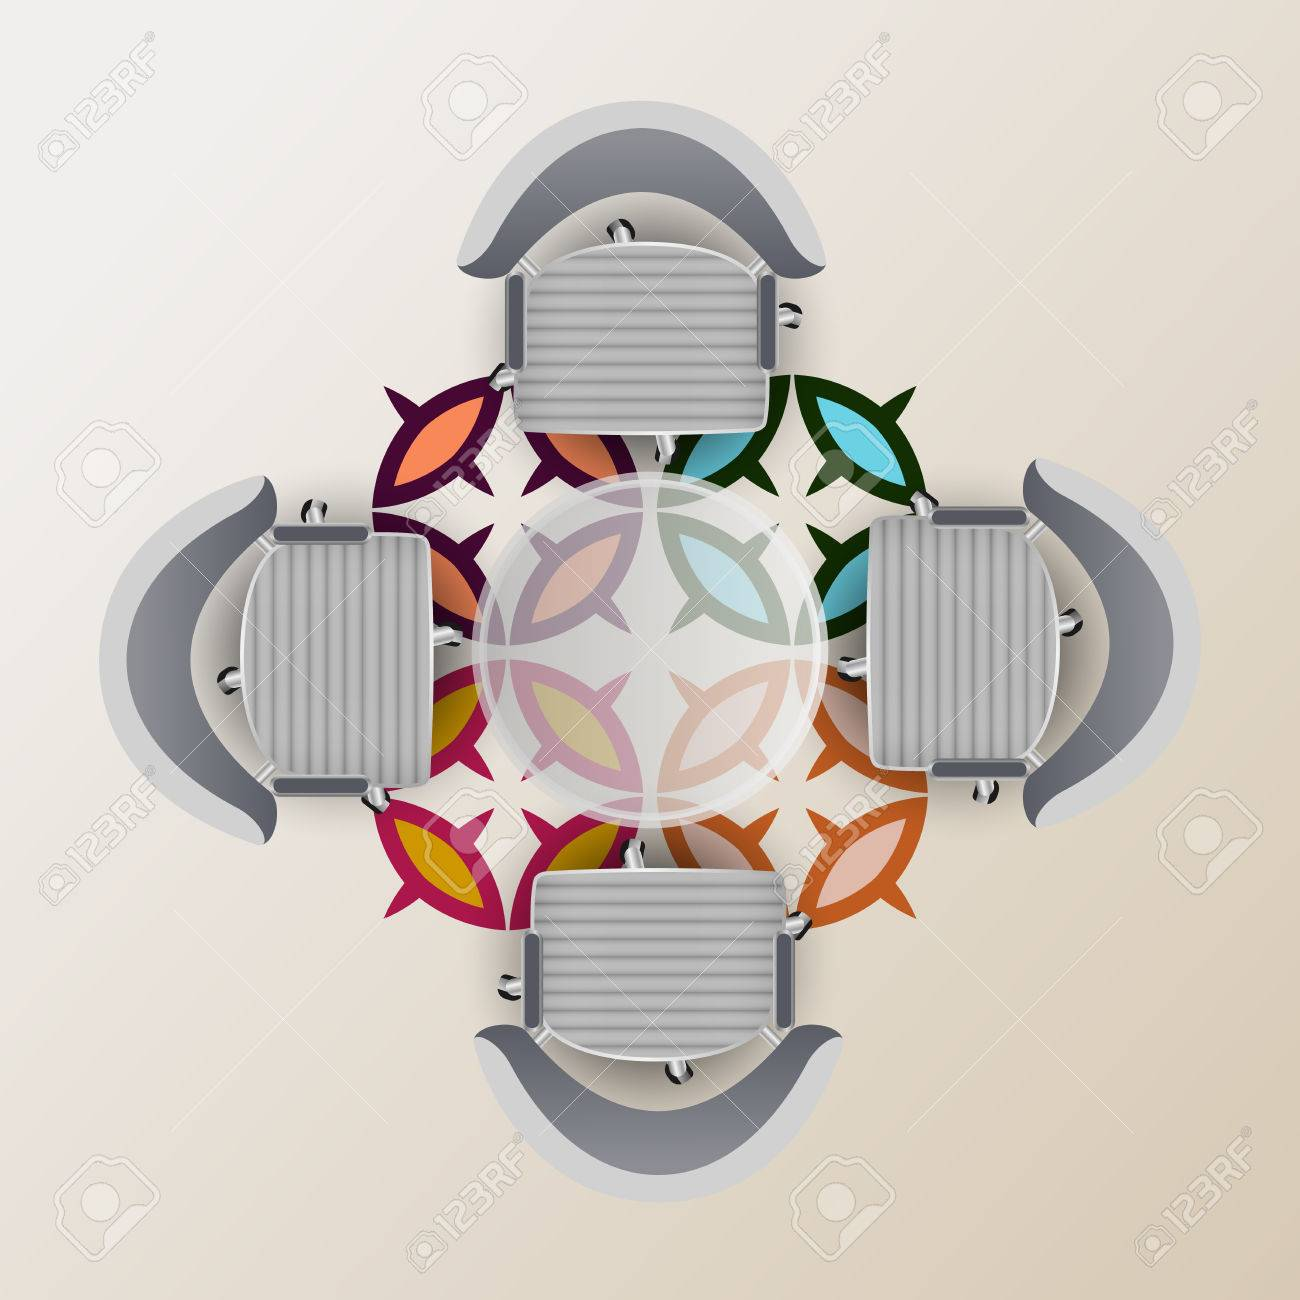 glass table top view. Top View Of A Conference Room. Half Round Glass Table, Four Chairs Carpet With Table 1